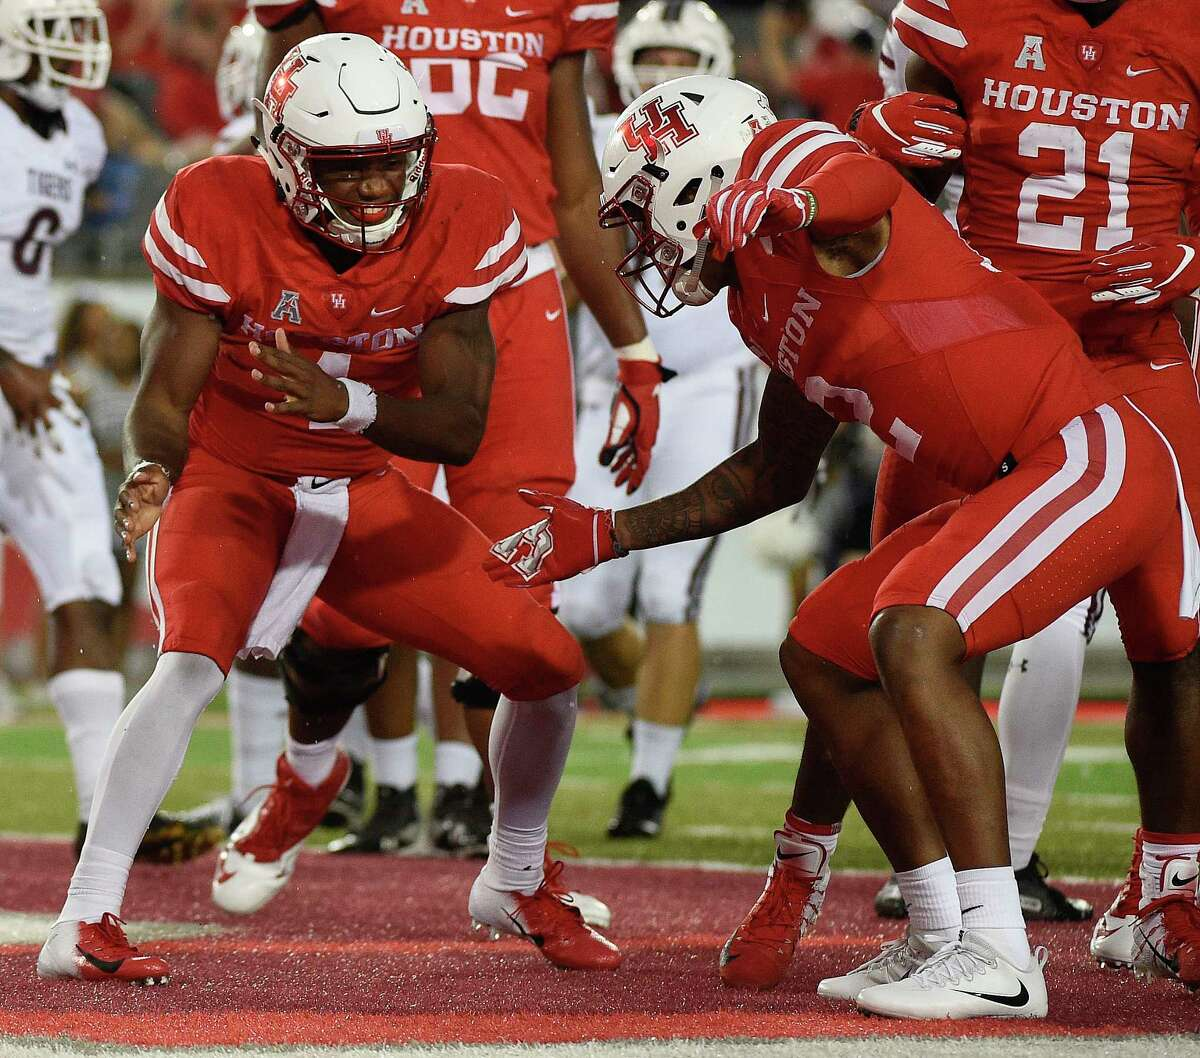 Houston quarterback D'Eriq King, left, celebrates his touchdown with Keith Corbin during the first half of an NCAA college football game against Texas Southern, Saturday, Sept. 22, 2018, in Houston.